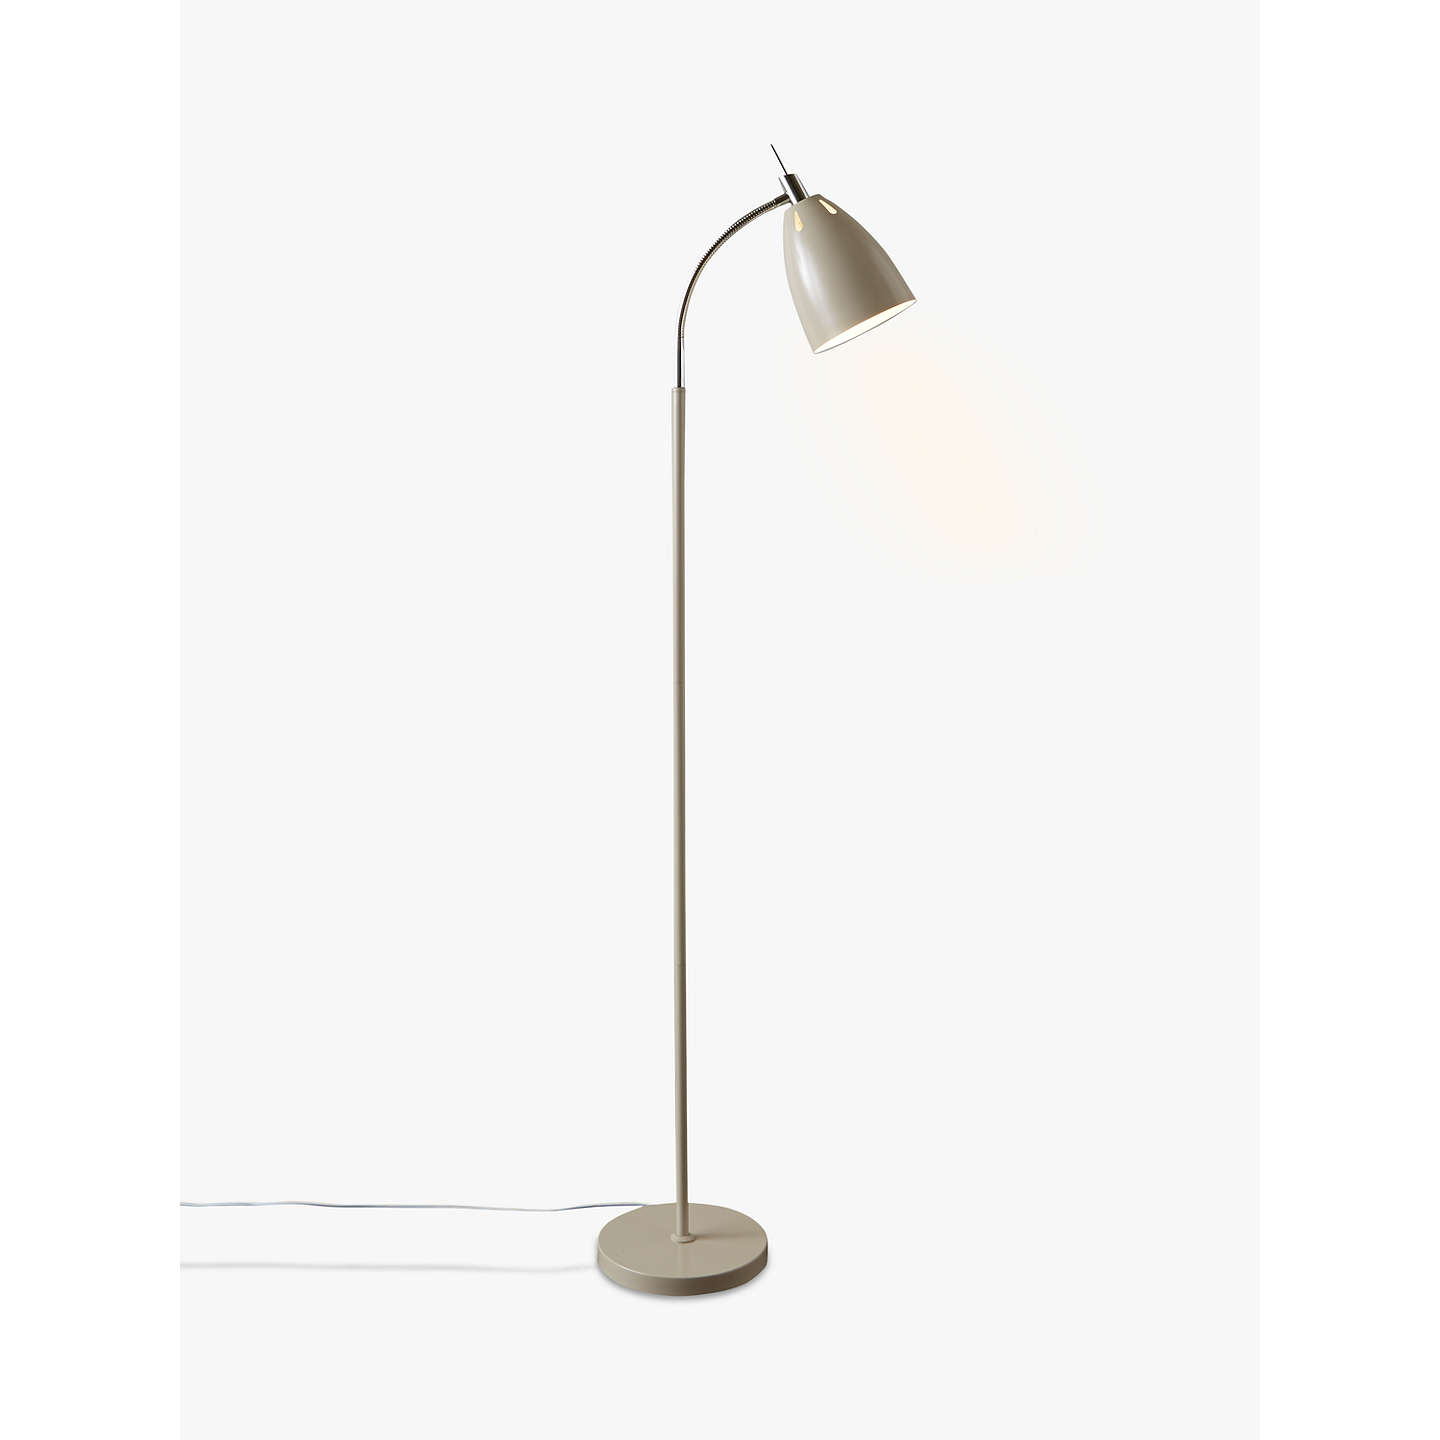 John lewis neil led floor lamp taupe at john lewis buyjohn lewis neil led floor lamp taupe online at johnlewis mozeypictures Choice Image